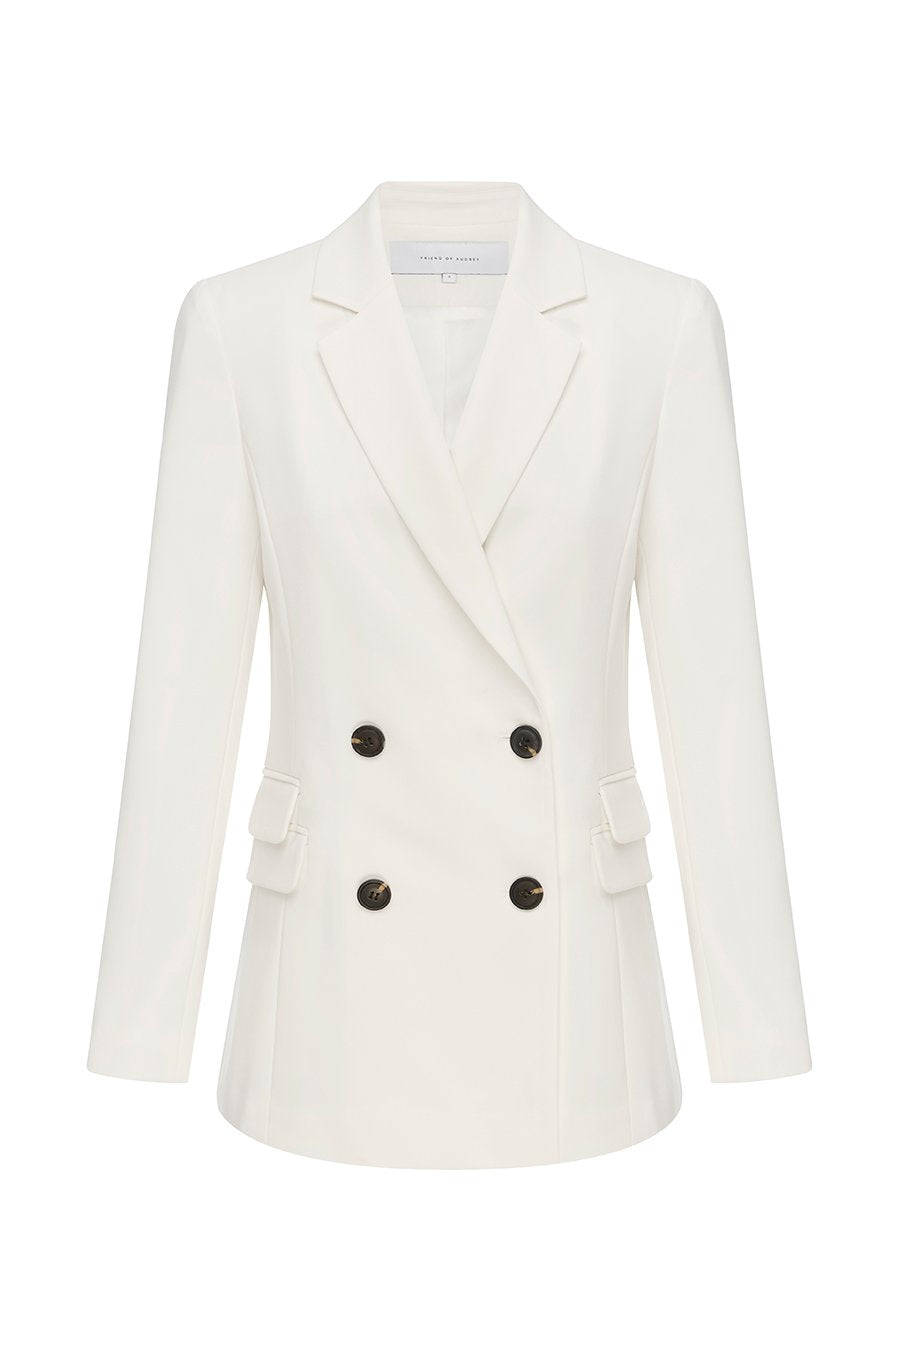 FRIEND OF AUDREY | Marc Double Breasted Blazer